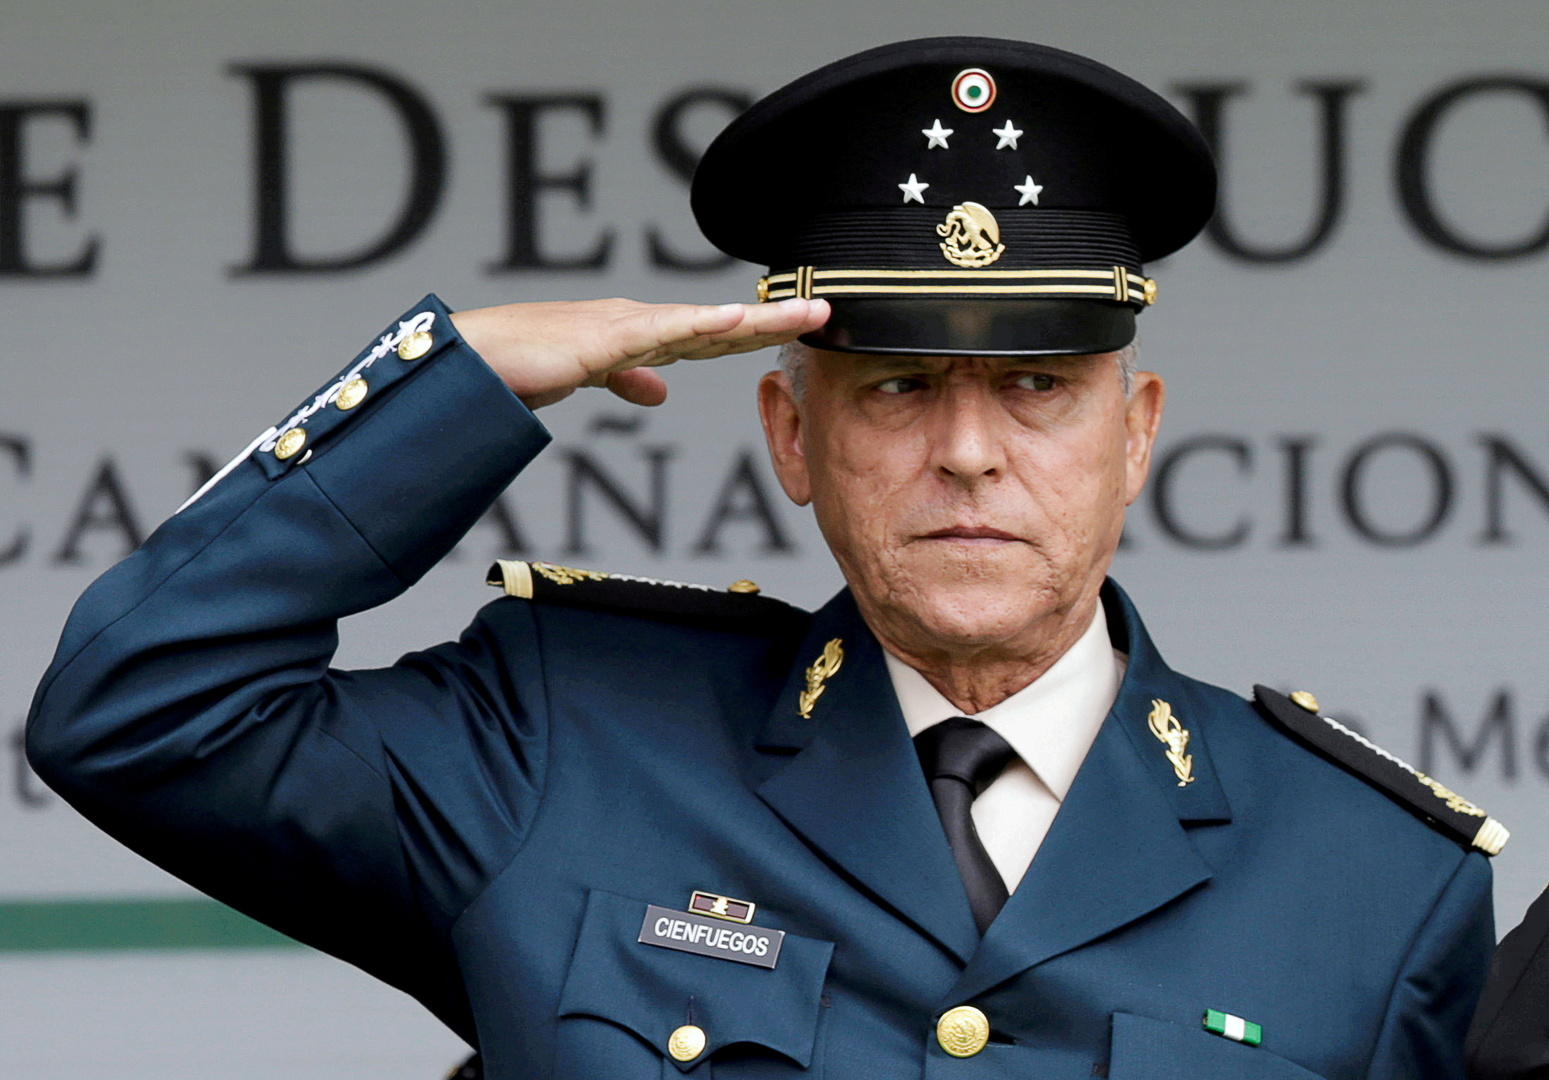 The return of the former Mexican Minister of Defense to his country after his criminal charges were dropped